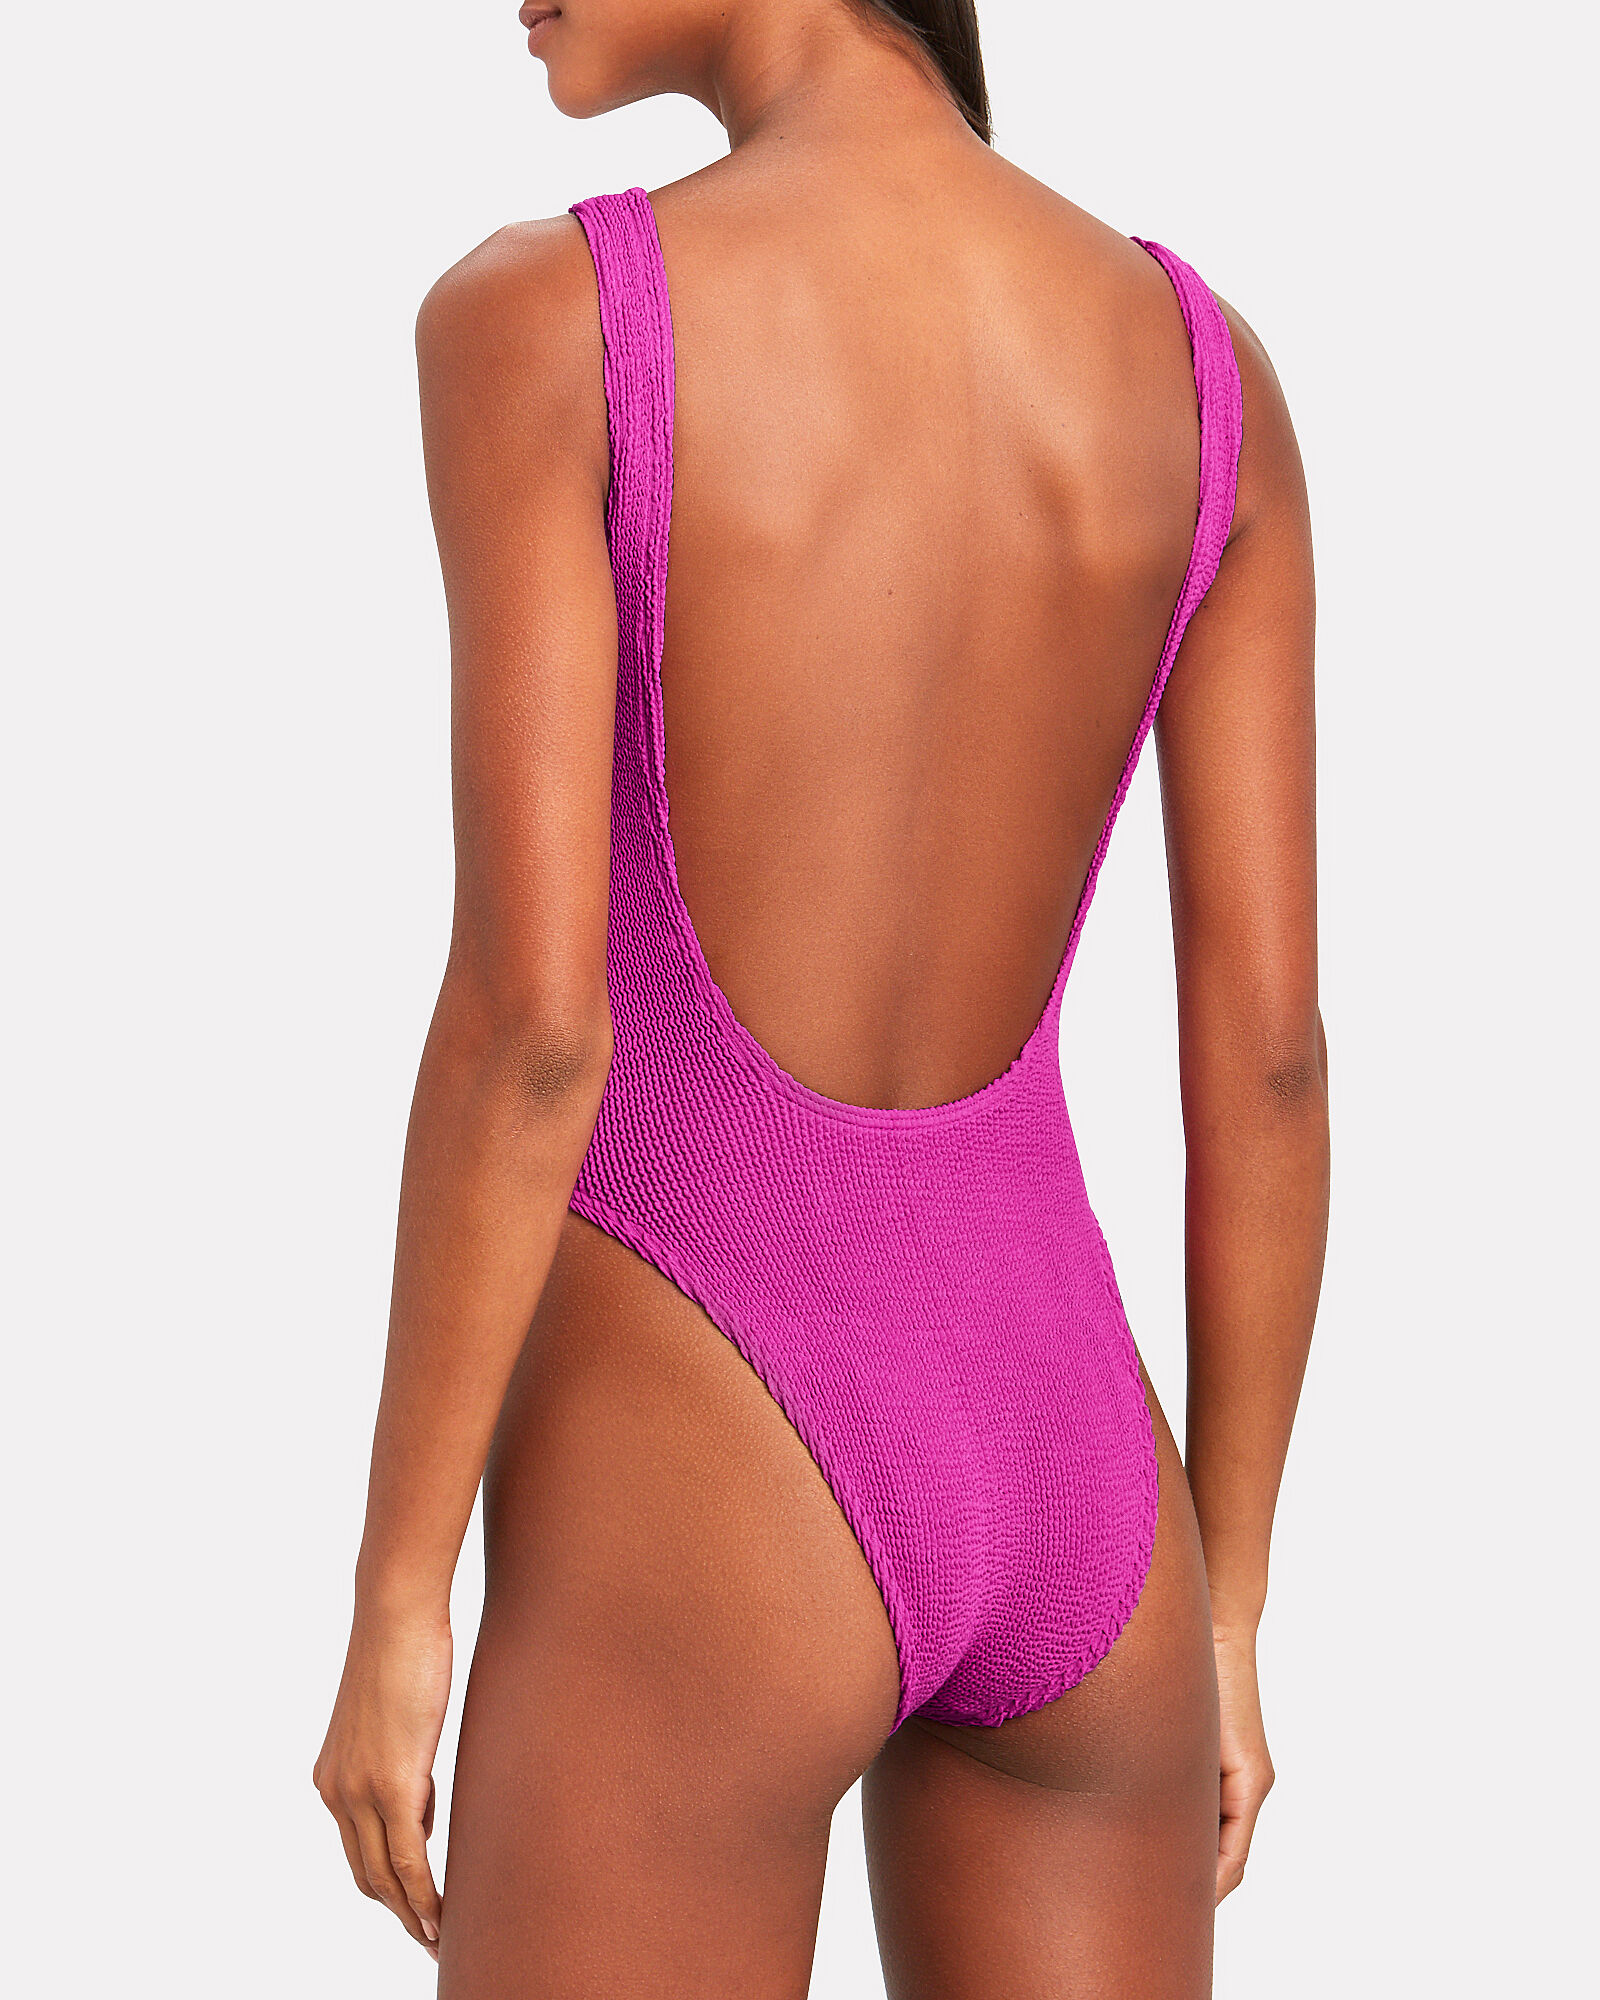 Moto Zip One-Piece Swimsuit, PINK, hi-res